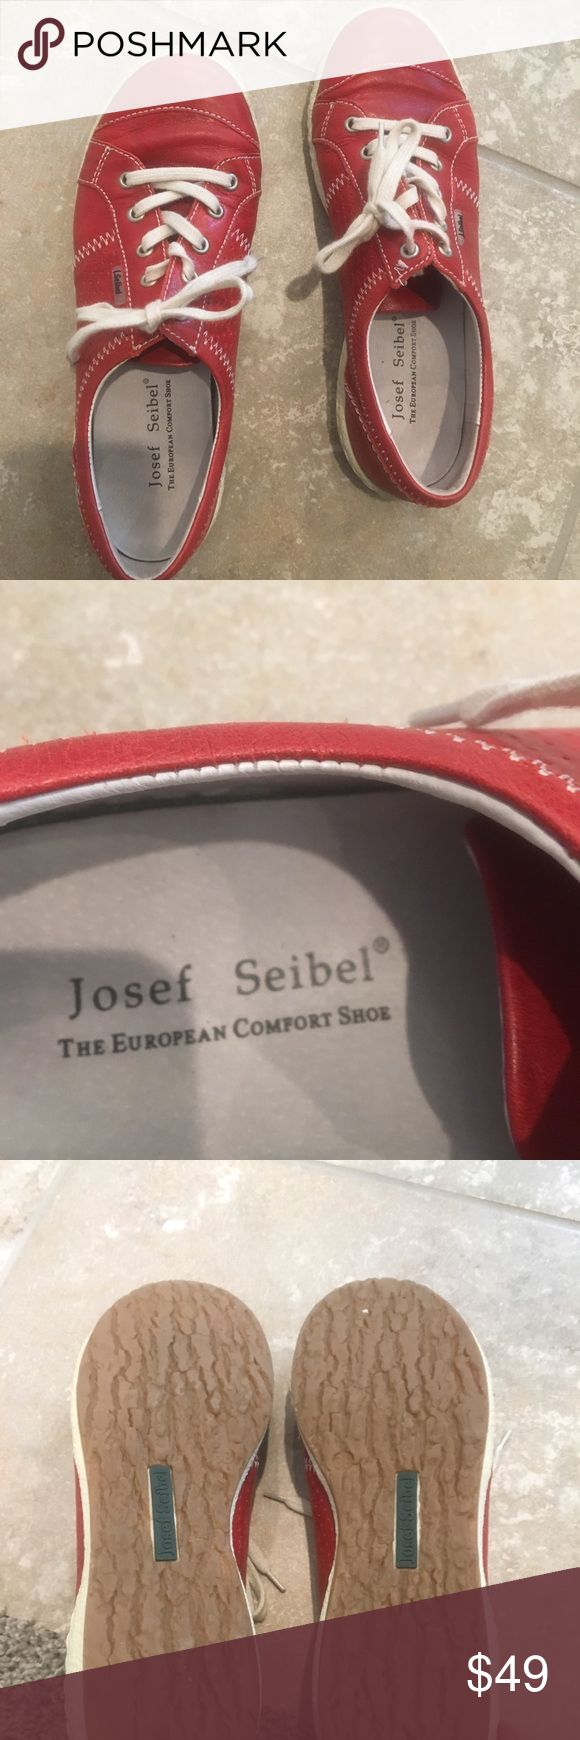 Josef Seibel shoes European leather comfort shoes. Made in Bulgaria. Worn twice. From the spoke and pet free home. Very good condition. Josef Seibel Shoes Flats & Loafers